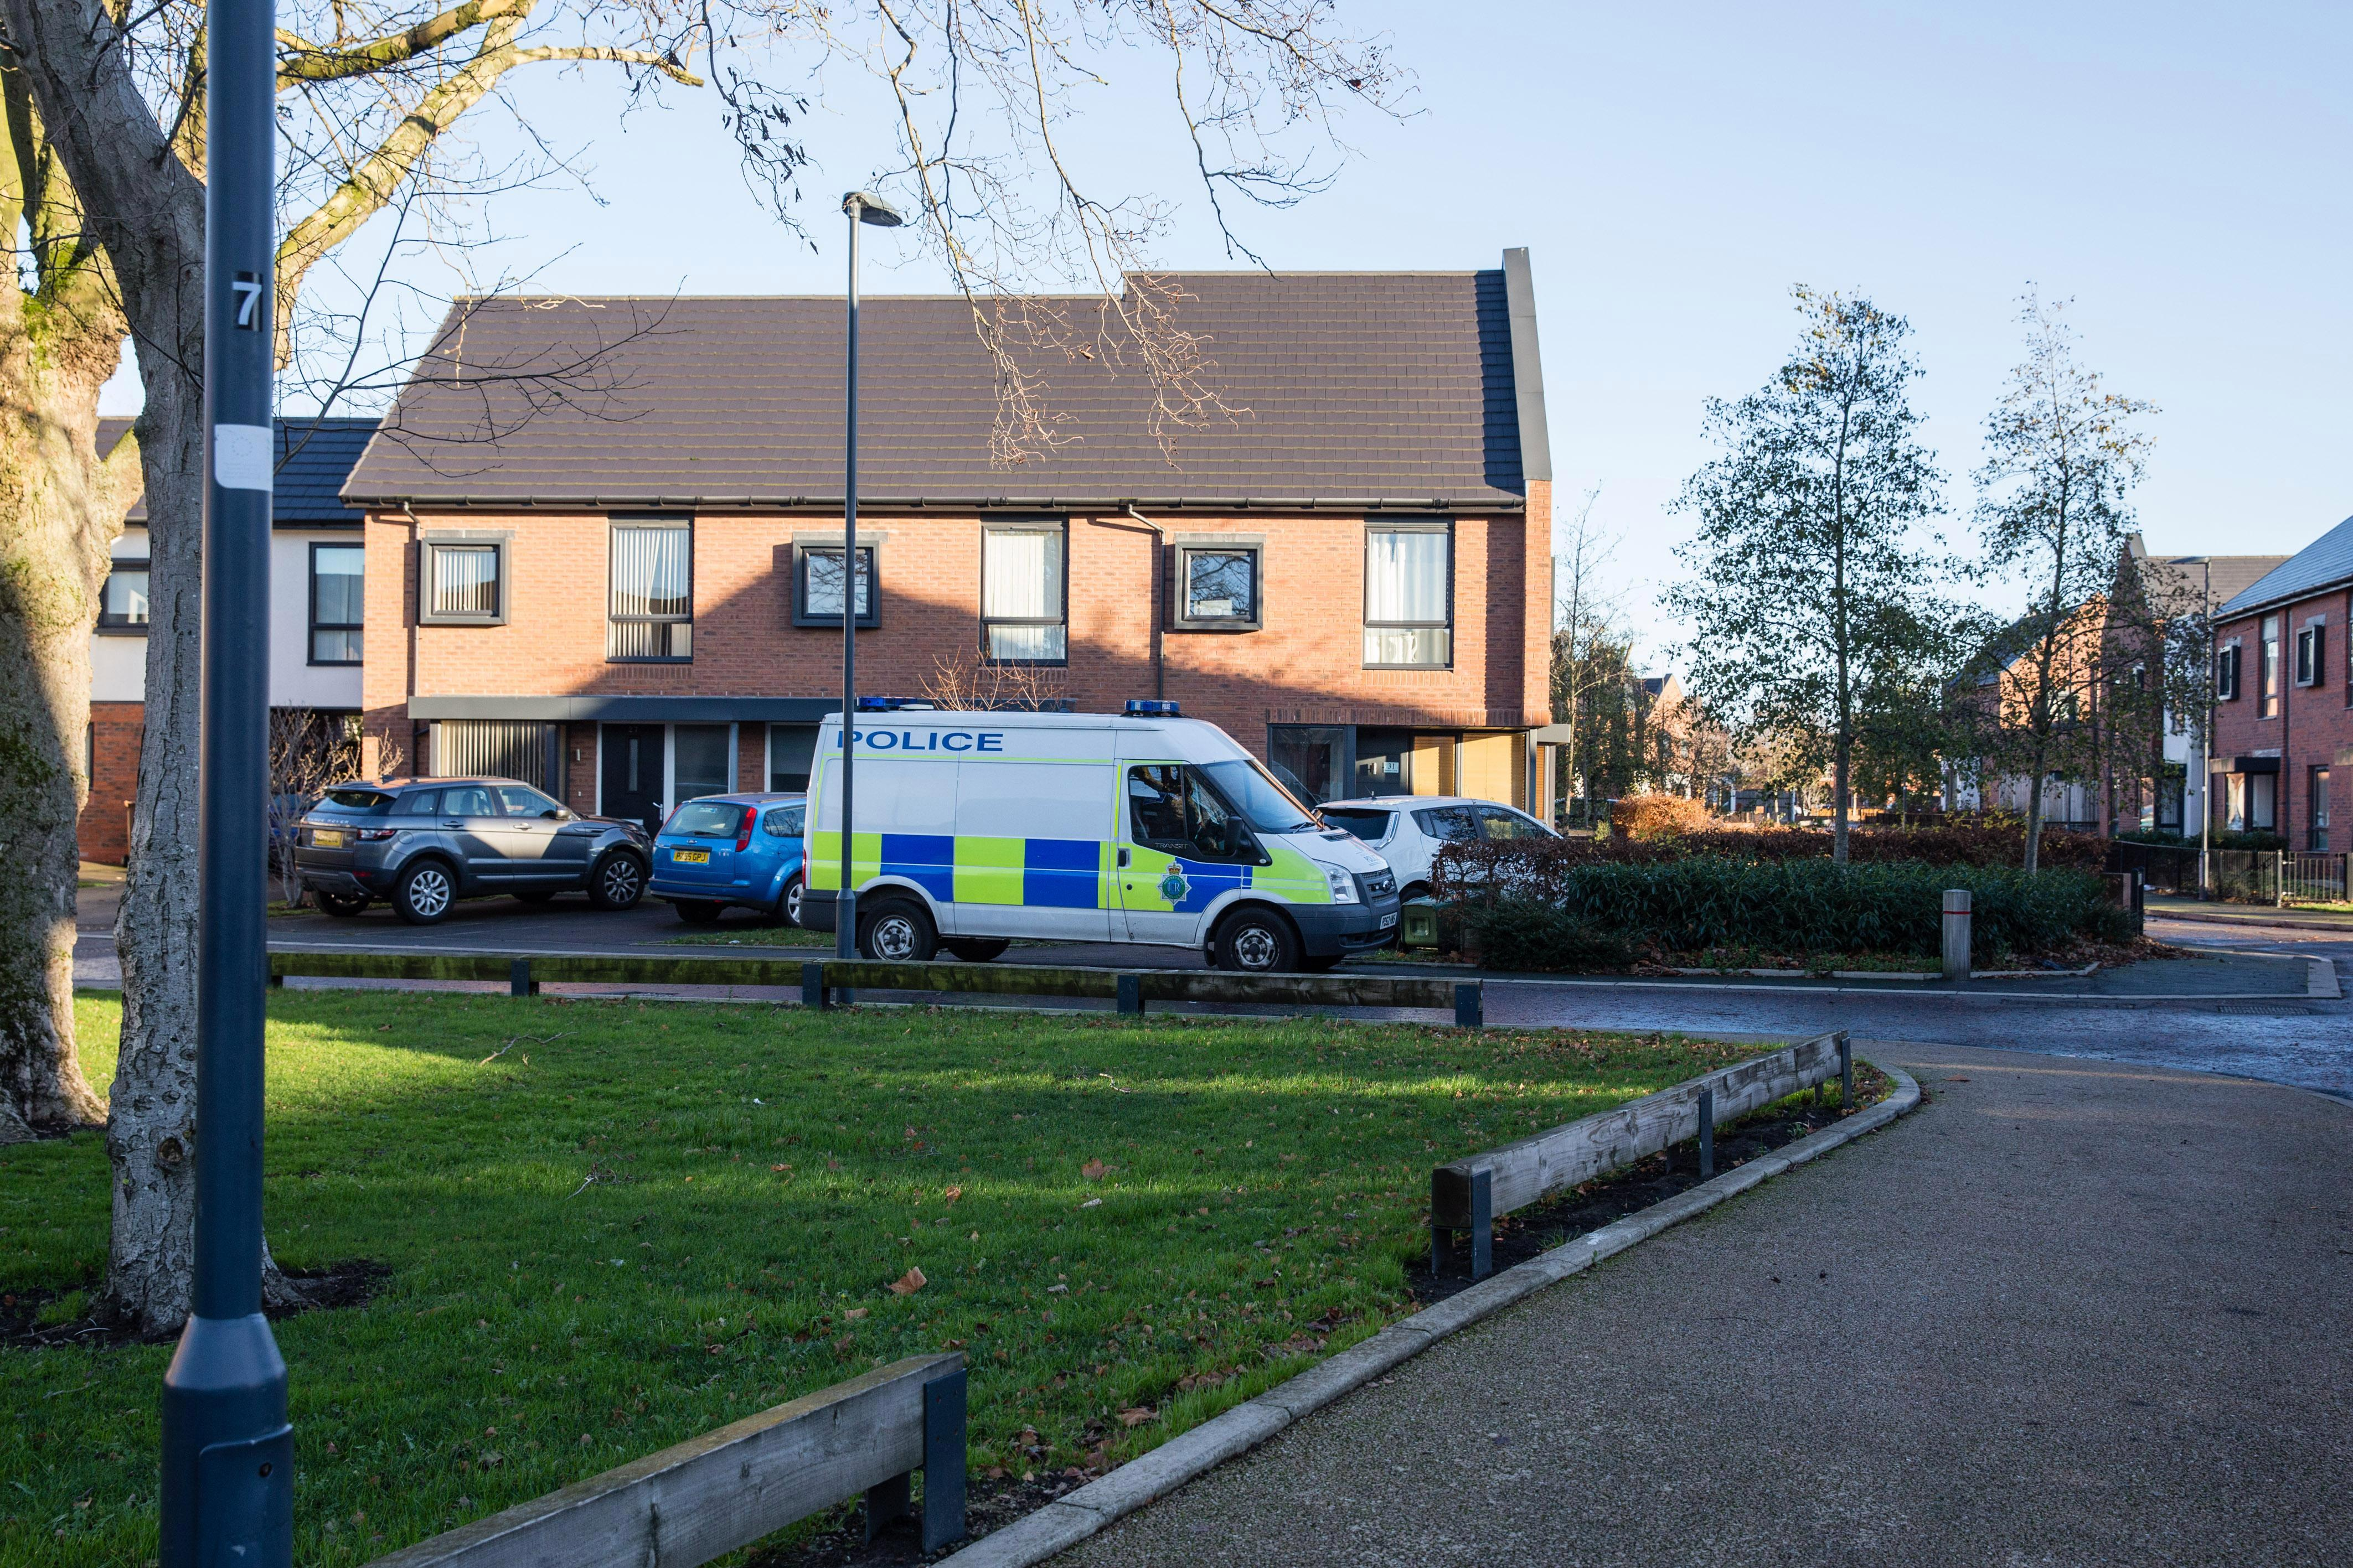 Girl, 13, found dead in home as police probe 'unexplained' tragedy